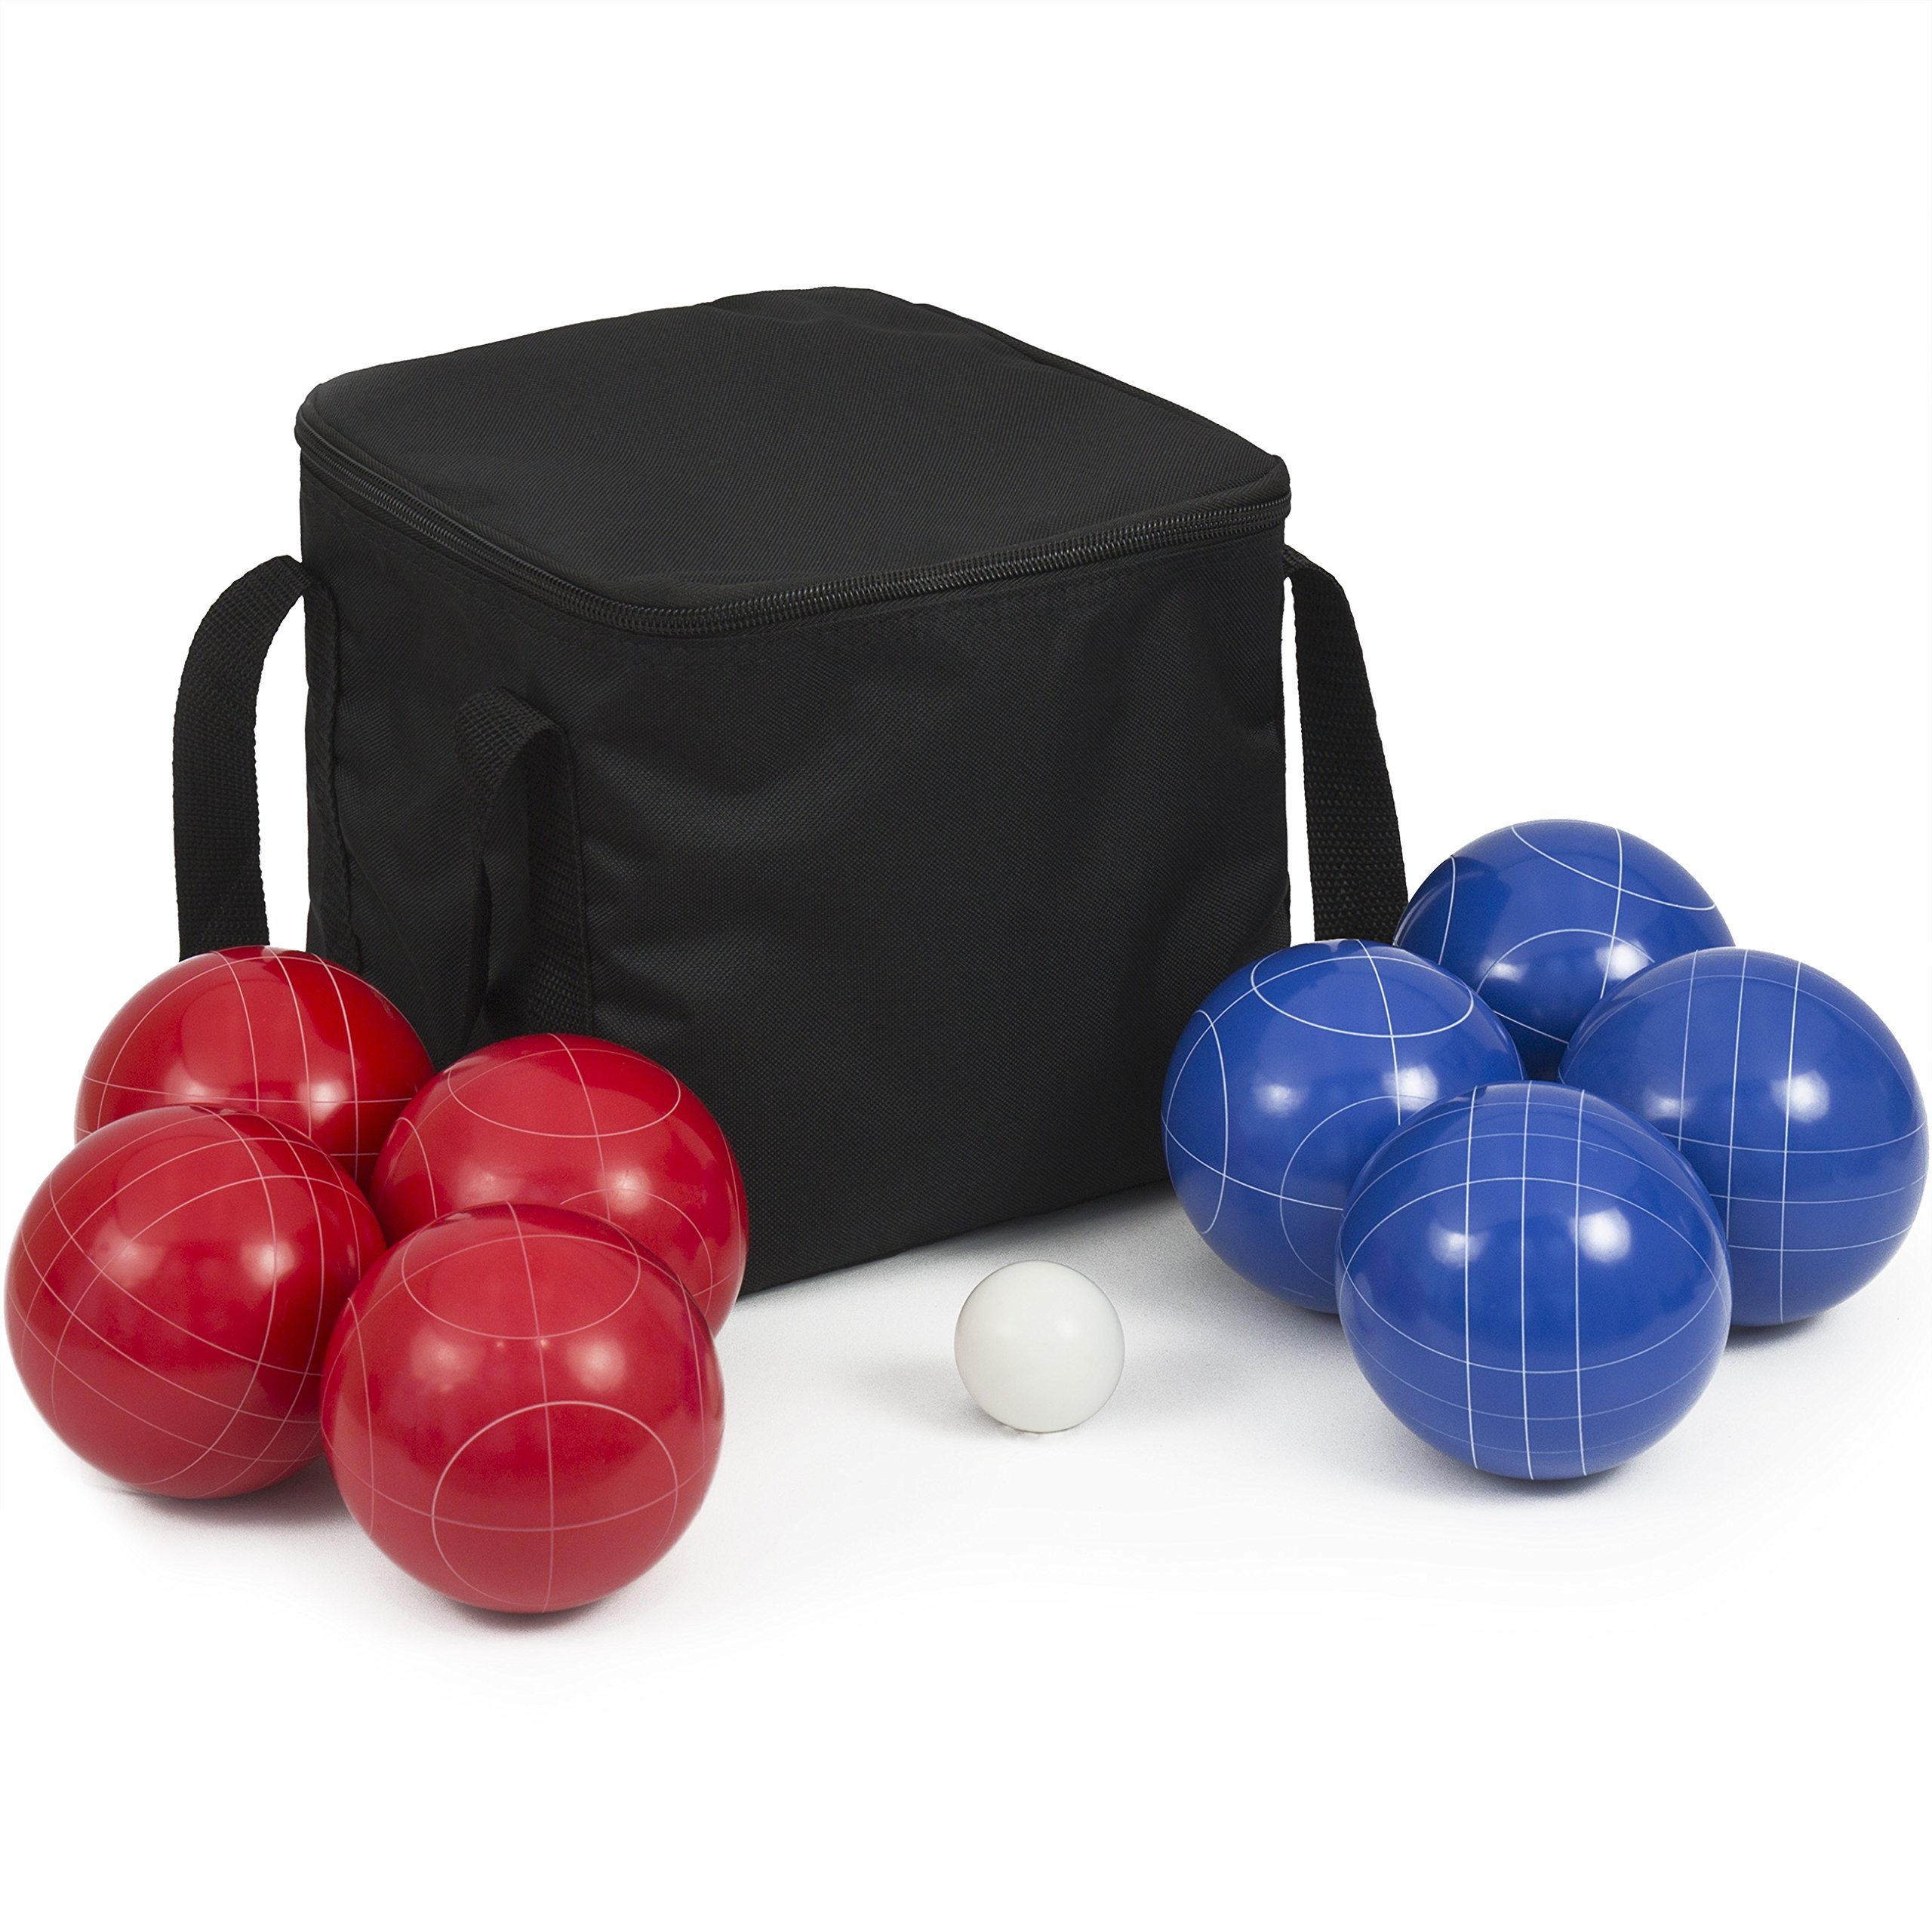 Best Choice Products 90mm Portable Lawn Games Resin Ultimate Bocce Balls Set w/ 9 Balls Carrying Case - Multicolor